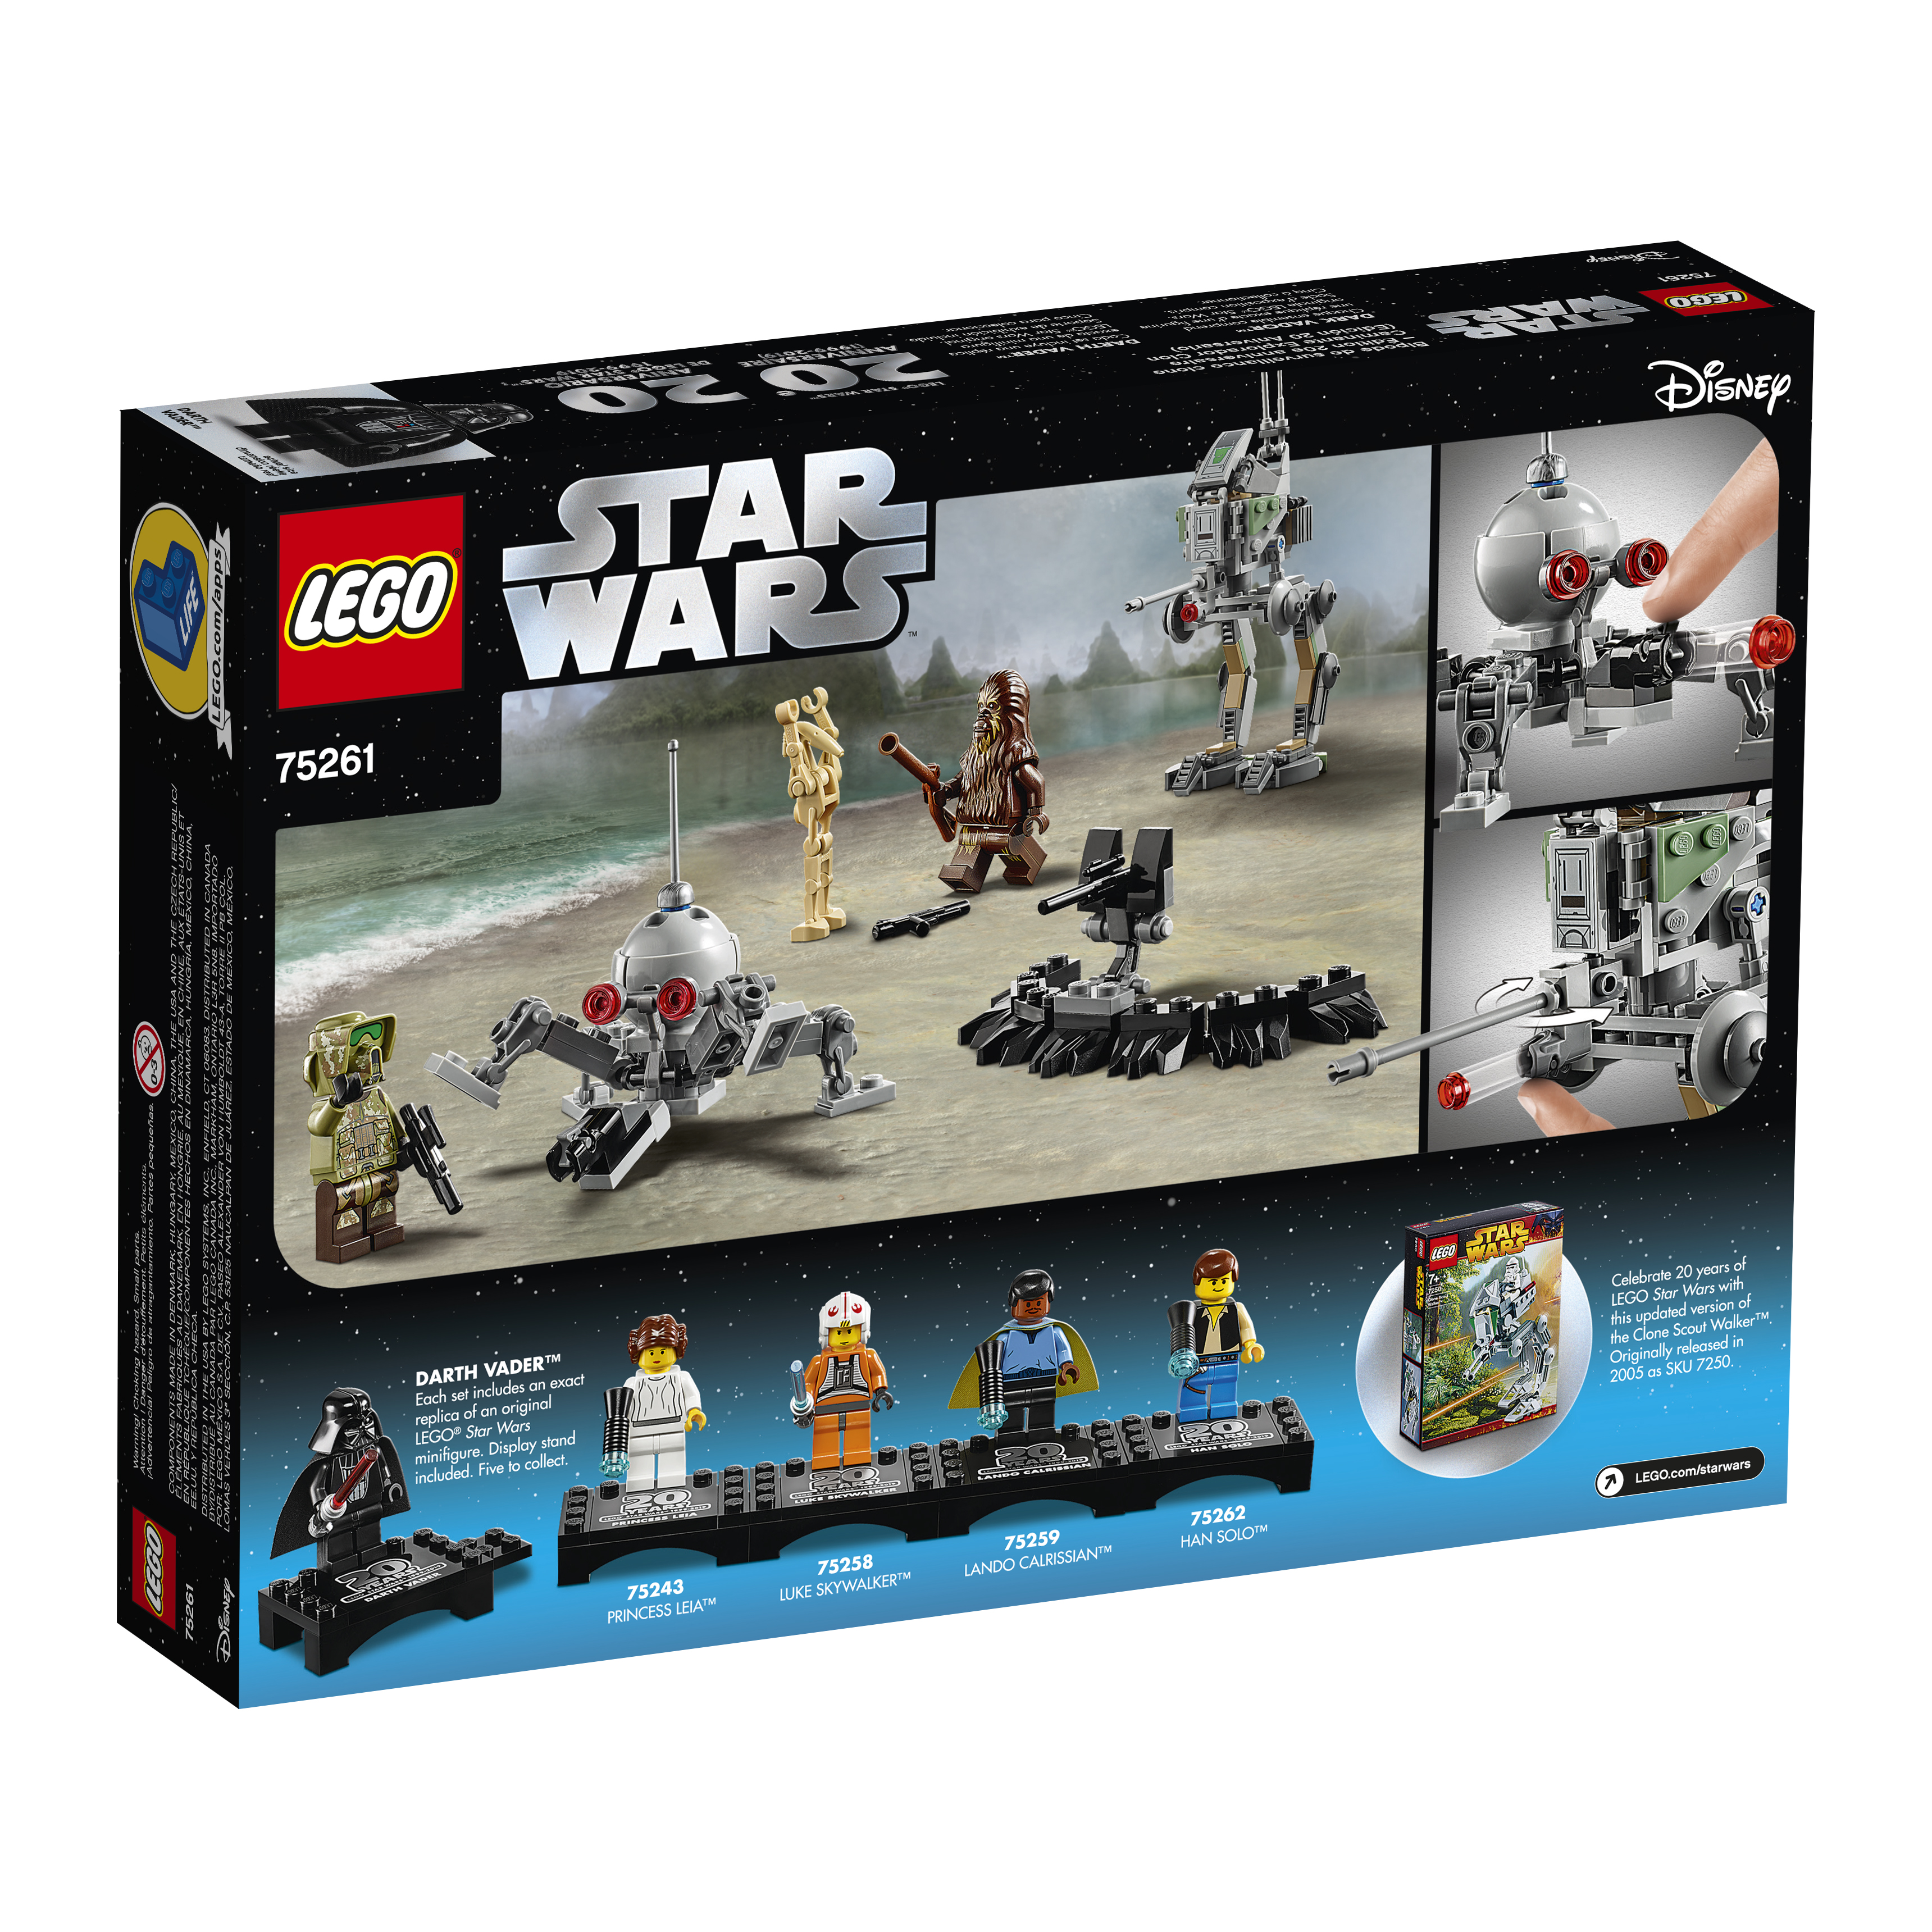 SW 20th Anniversary Edition Clone Scout Walker Lego Set 2